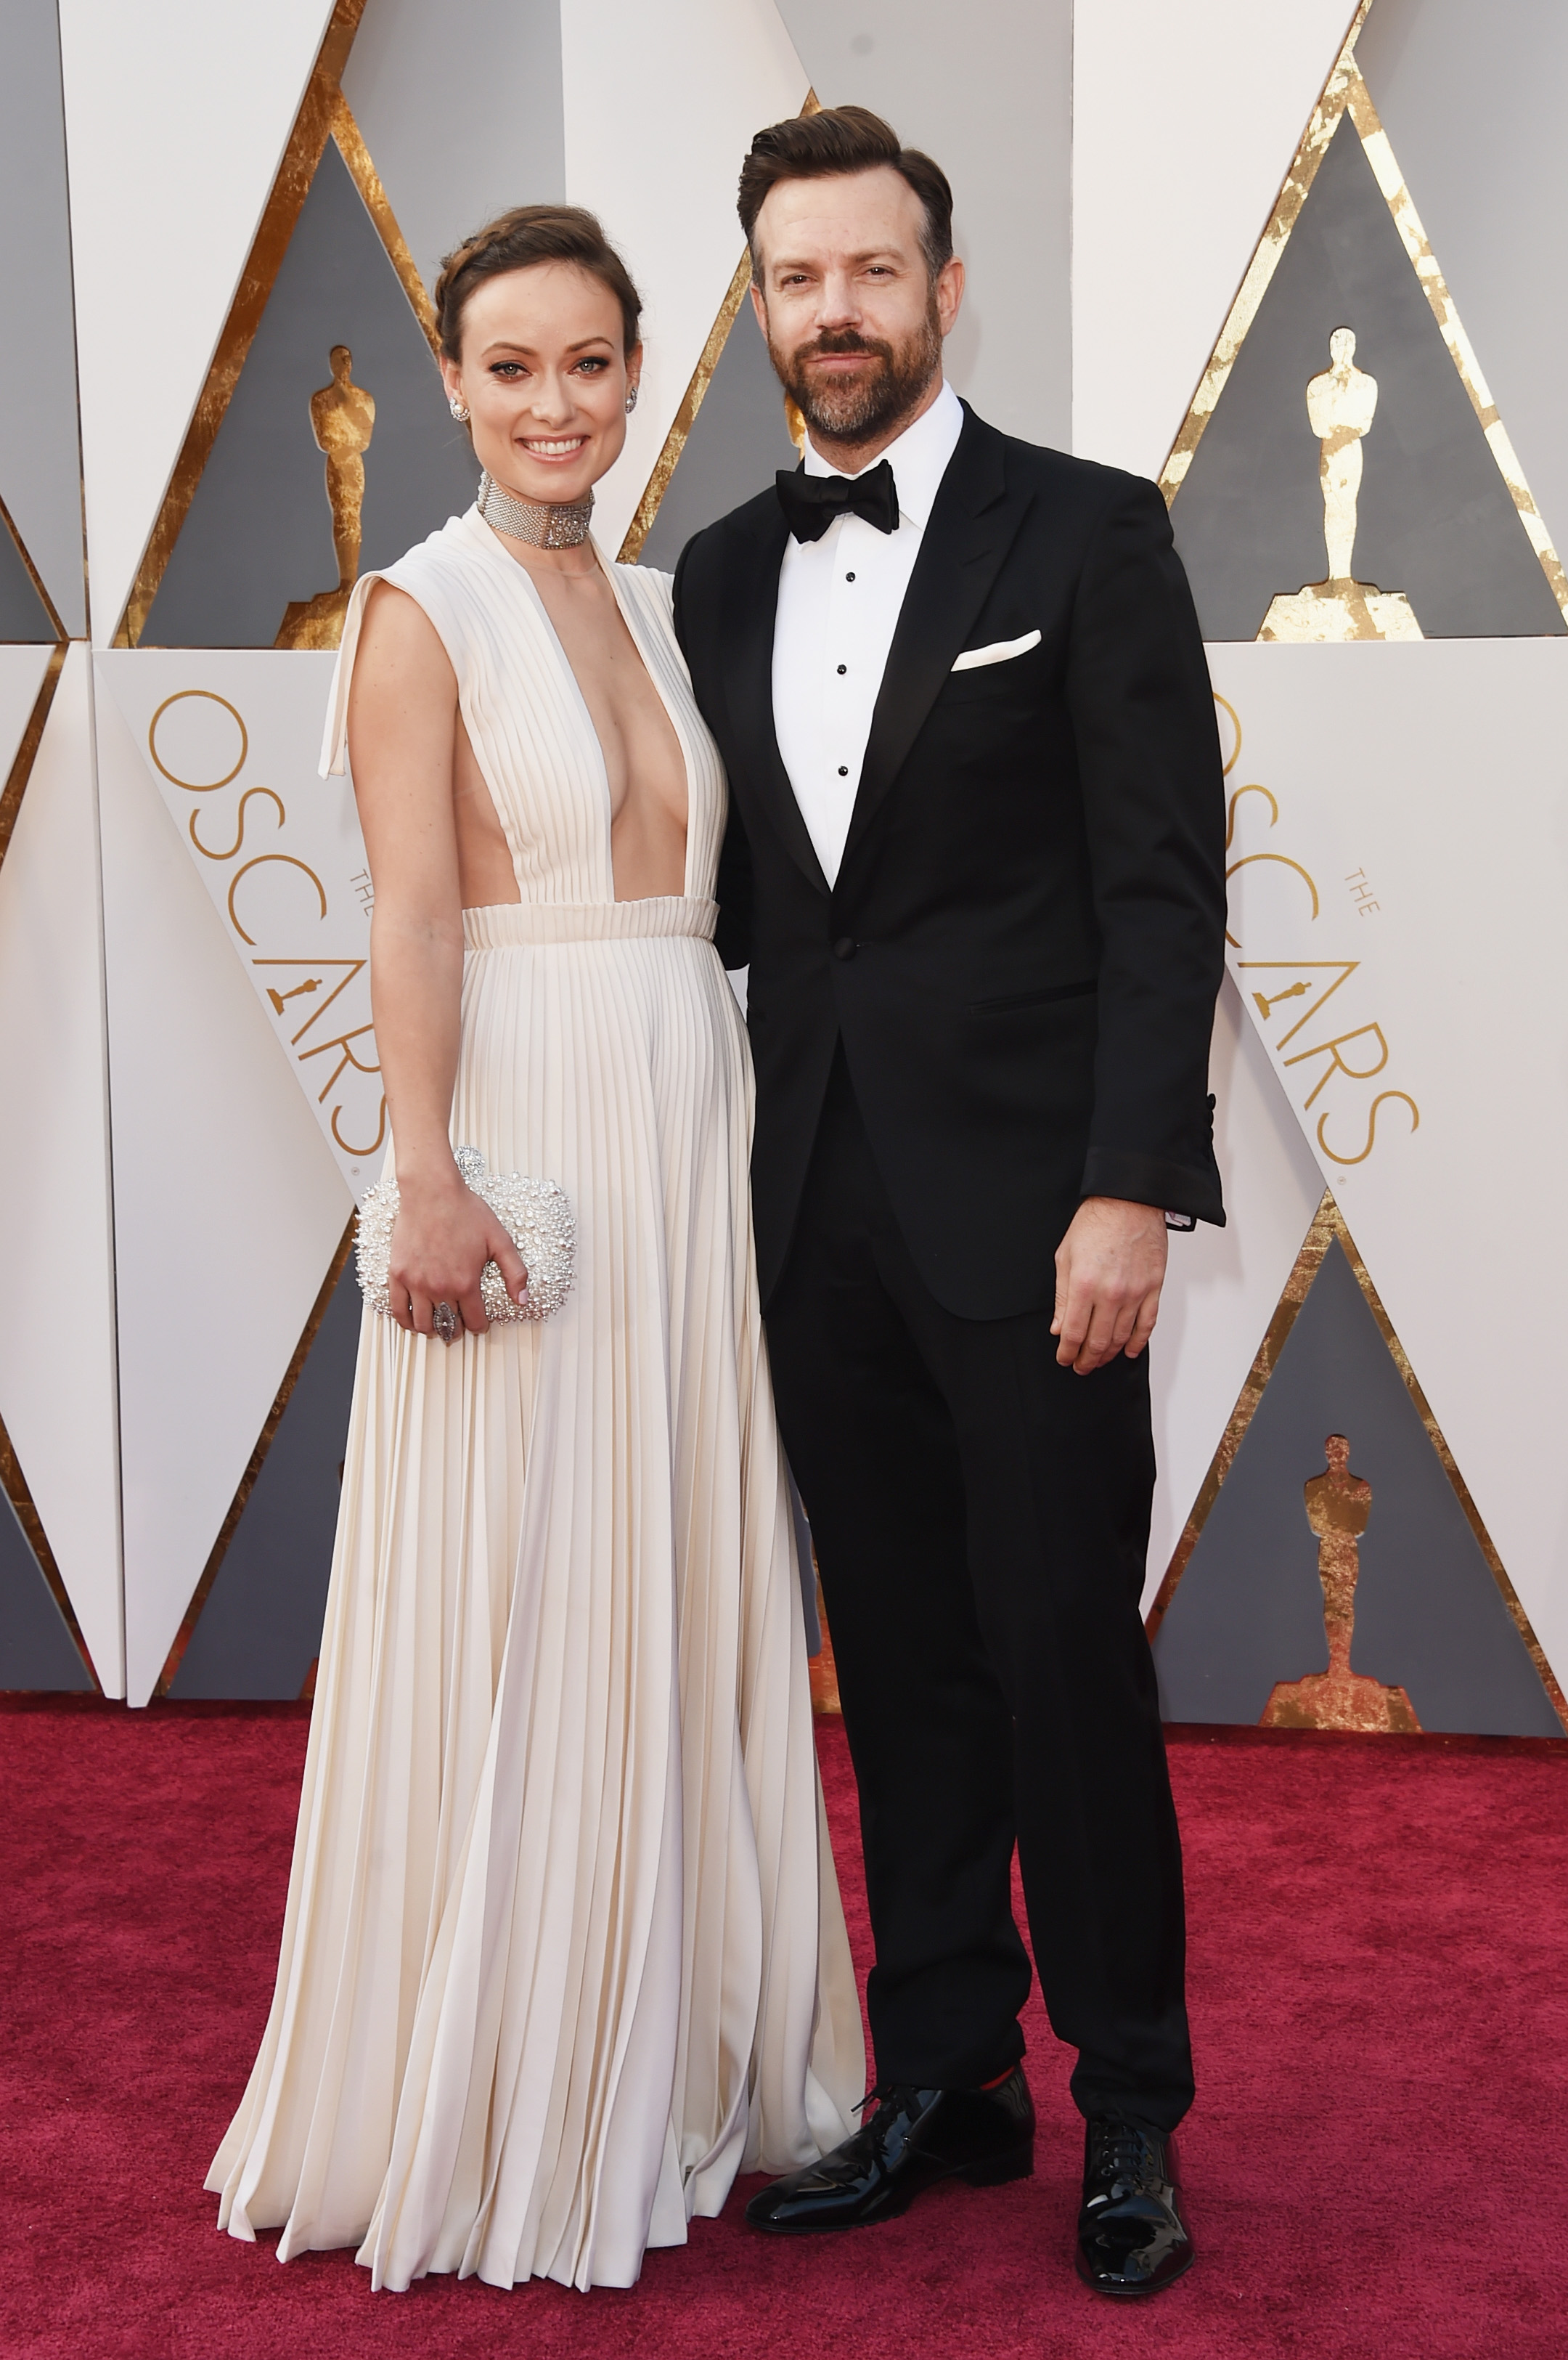 Olivia Wilde and Jason Sudeikis attend the 88th Annual Academy Awards on Feb. 28, 2016 in Hollywood, Calif.